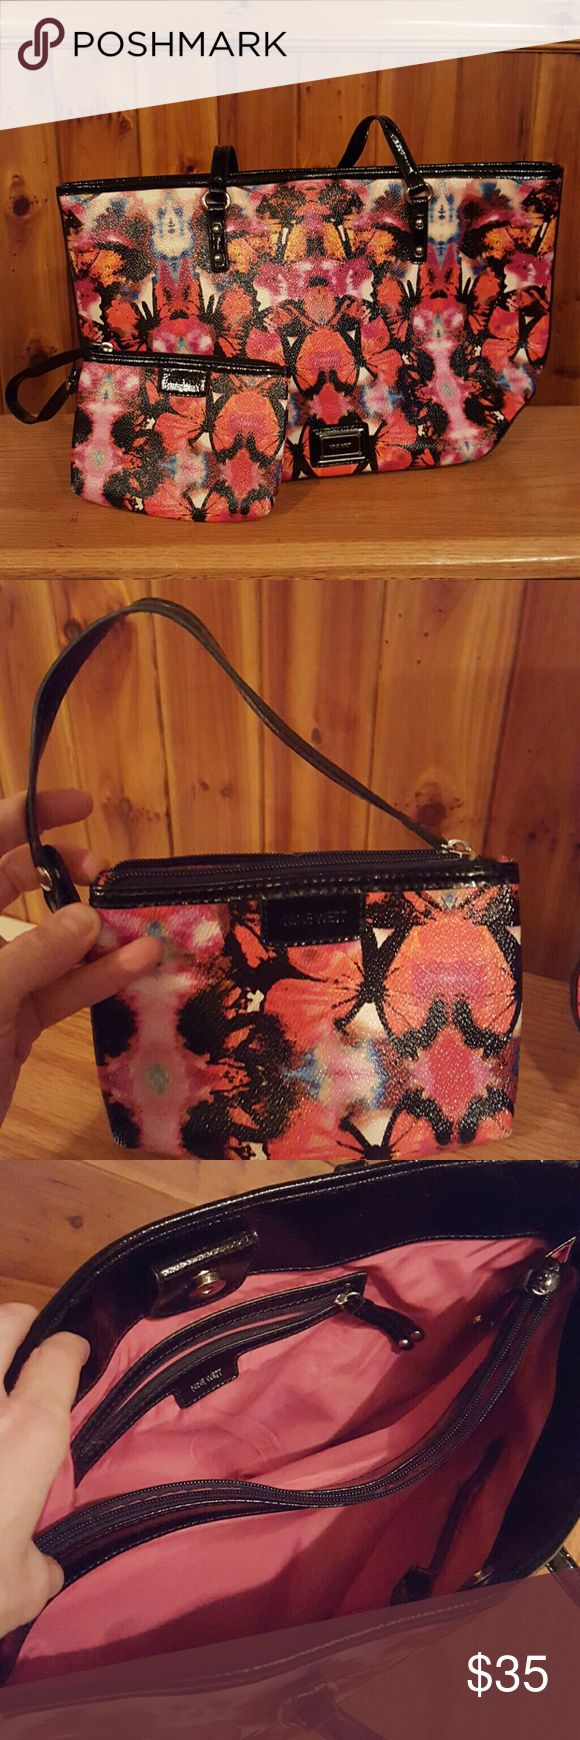 Nine West purse w matching wristlet Nine West purse with matching wristlet. In great condition. Pattern has butterflies. Lots of space for us women who love to pack our purses full Nine West Bags Shoulder Bags